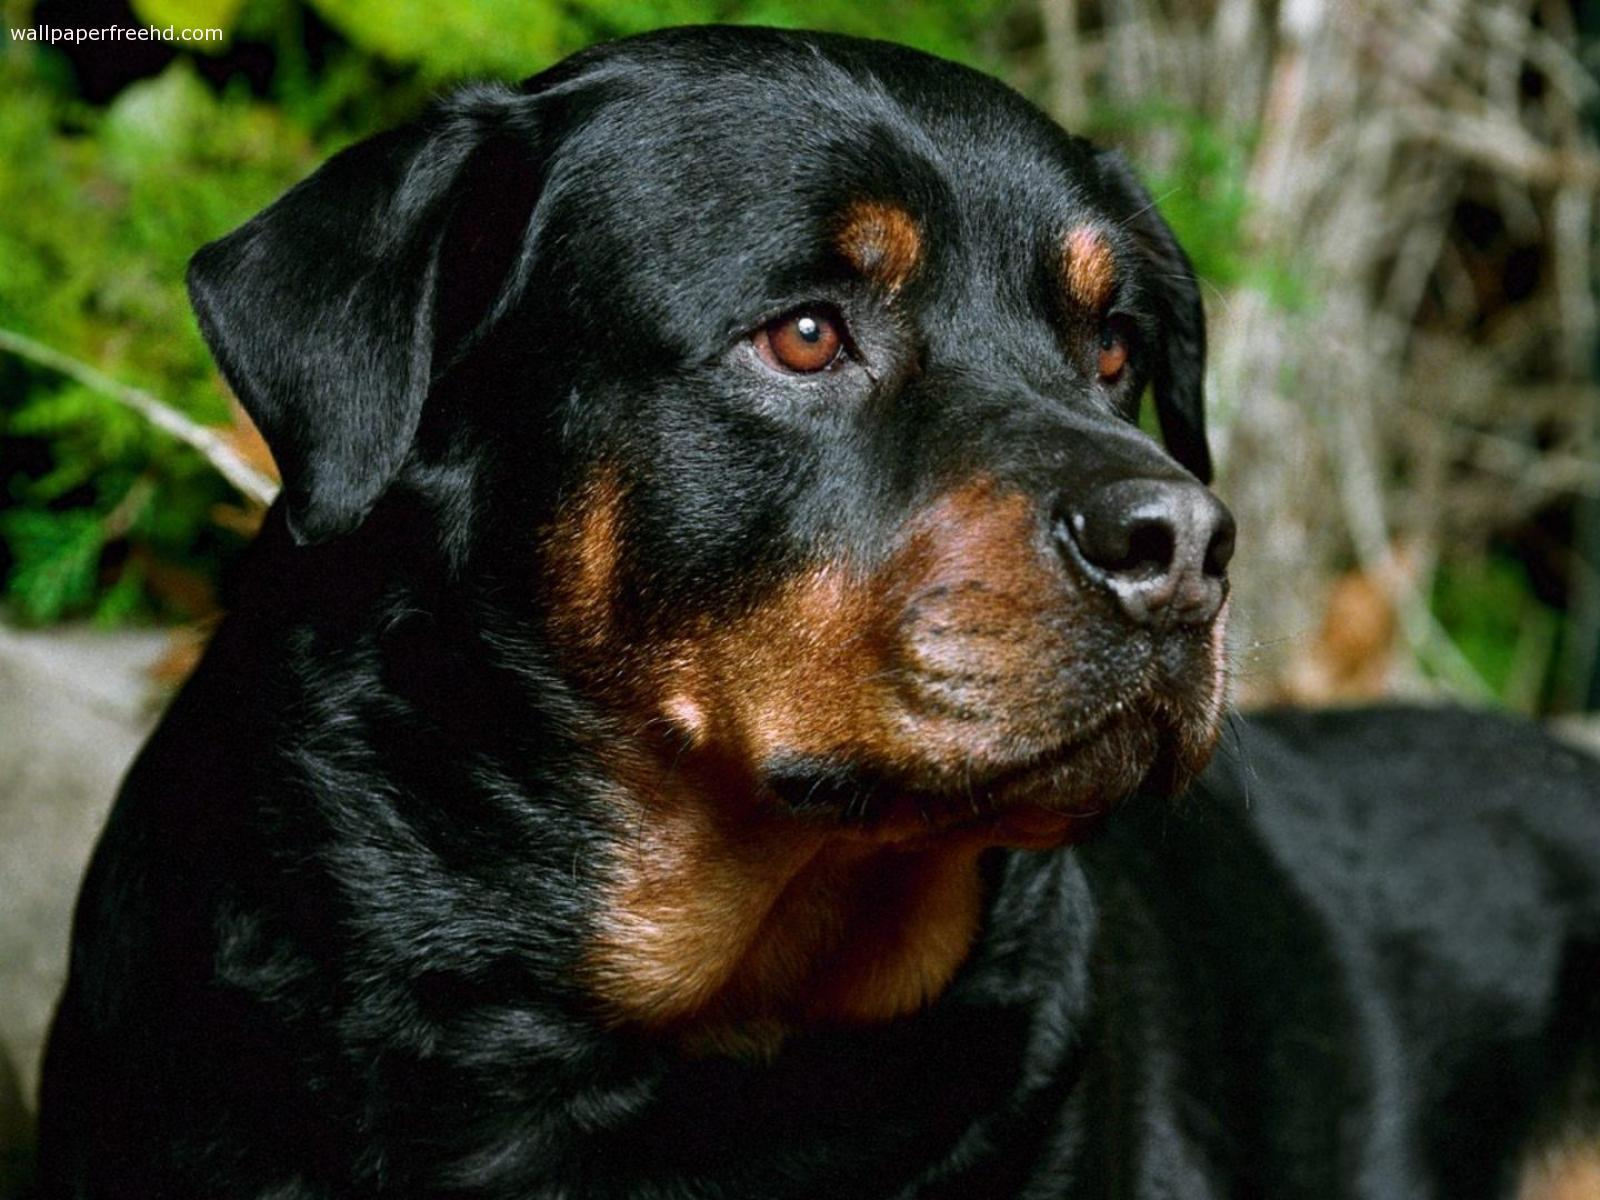 Rottweiler dog face wallpaper